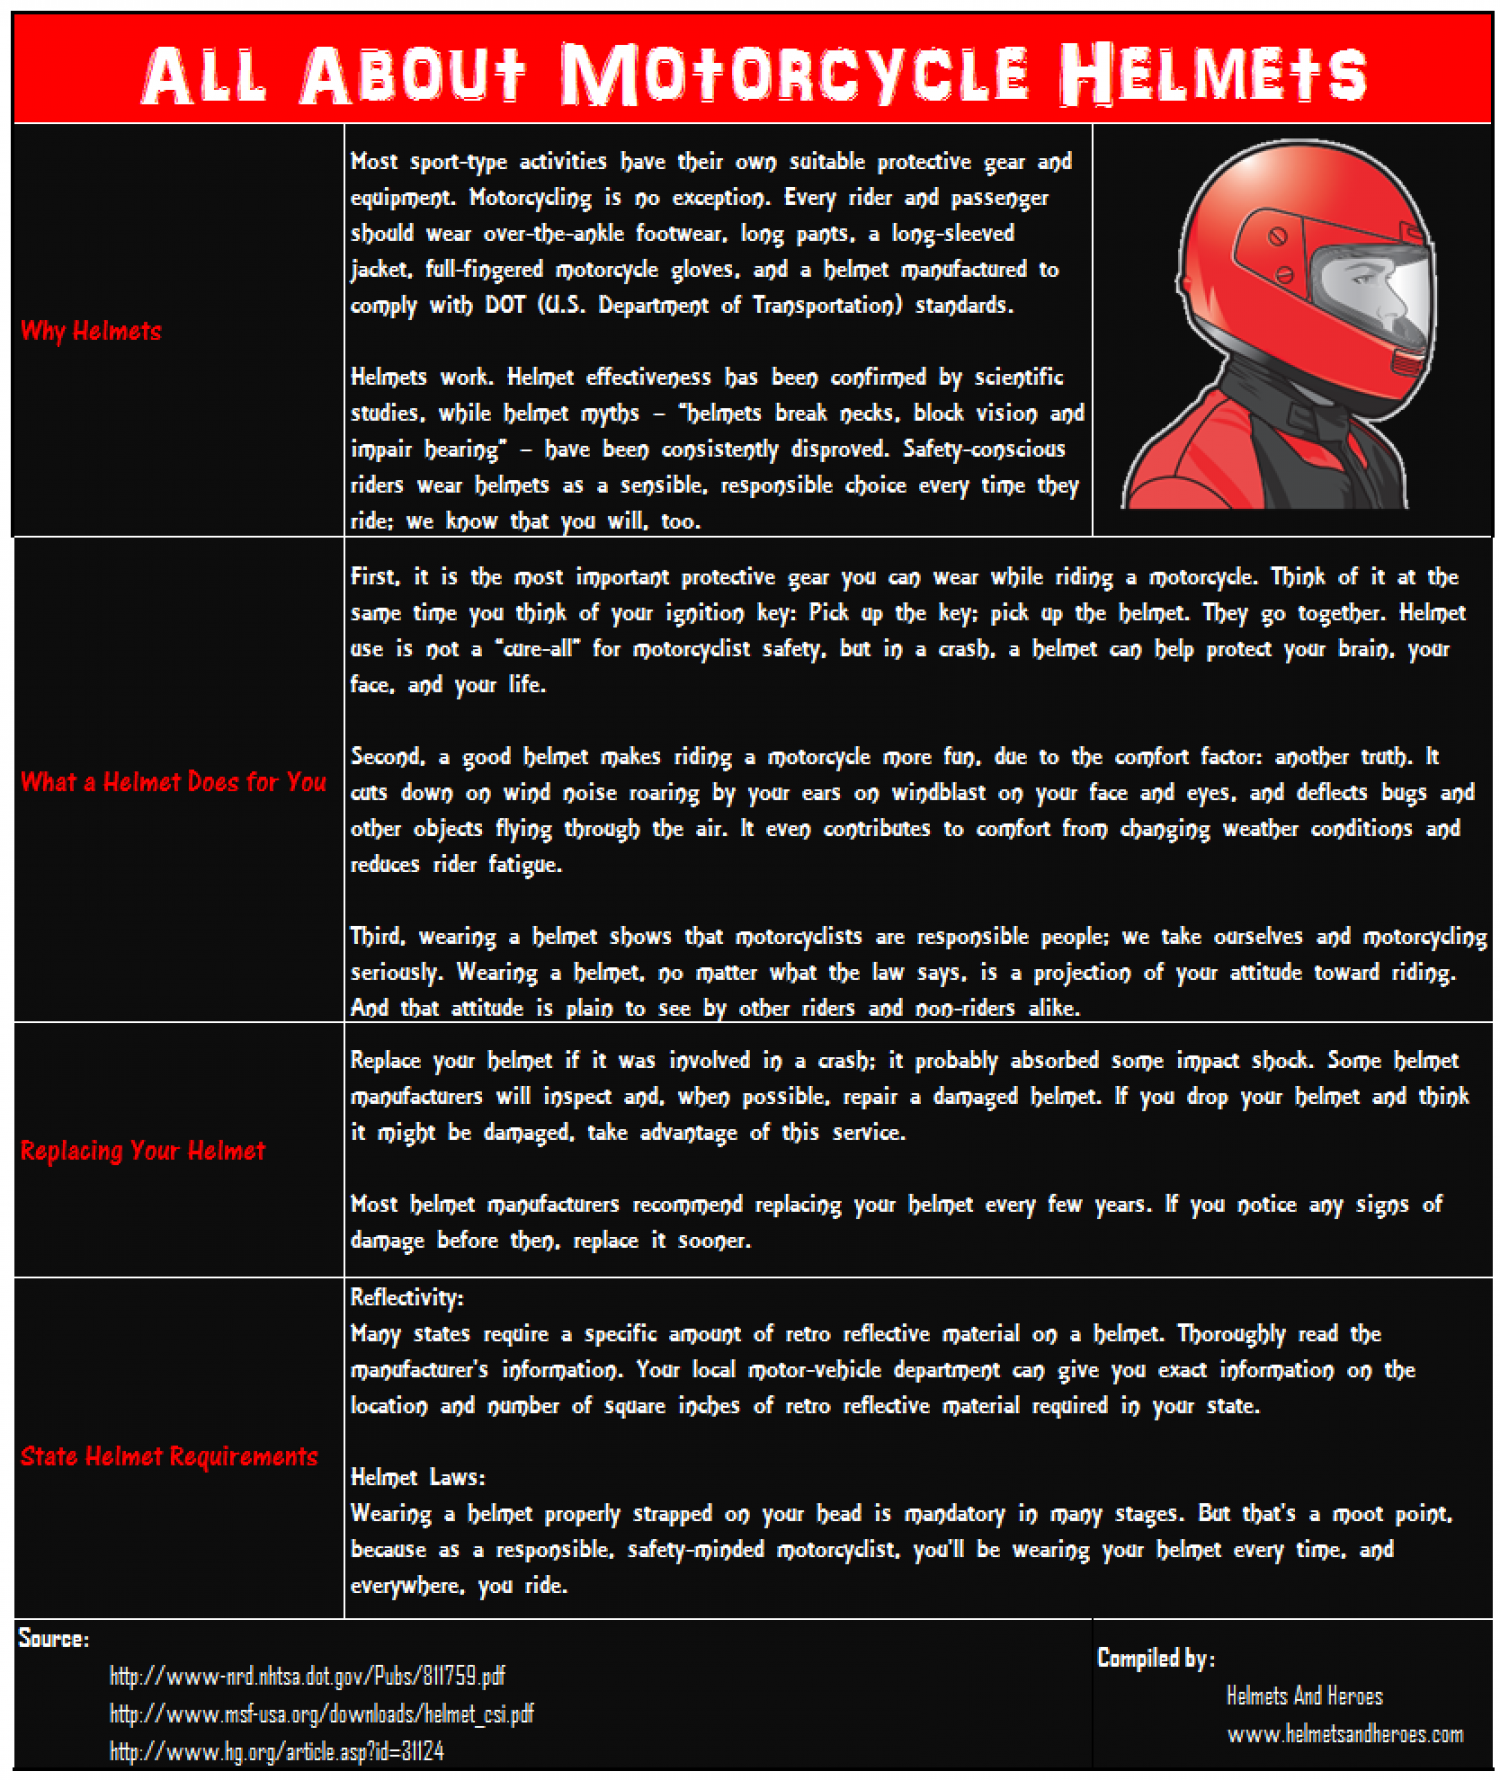 All About Motorcycle Helmets Infographic